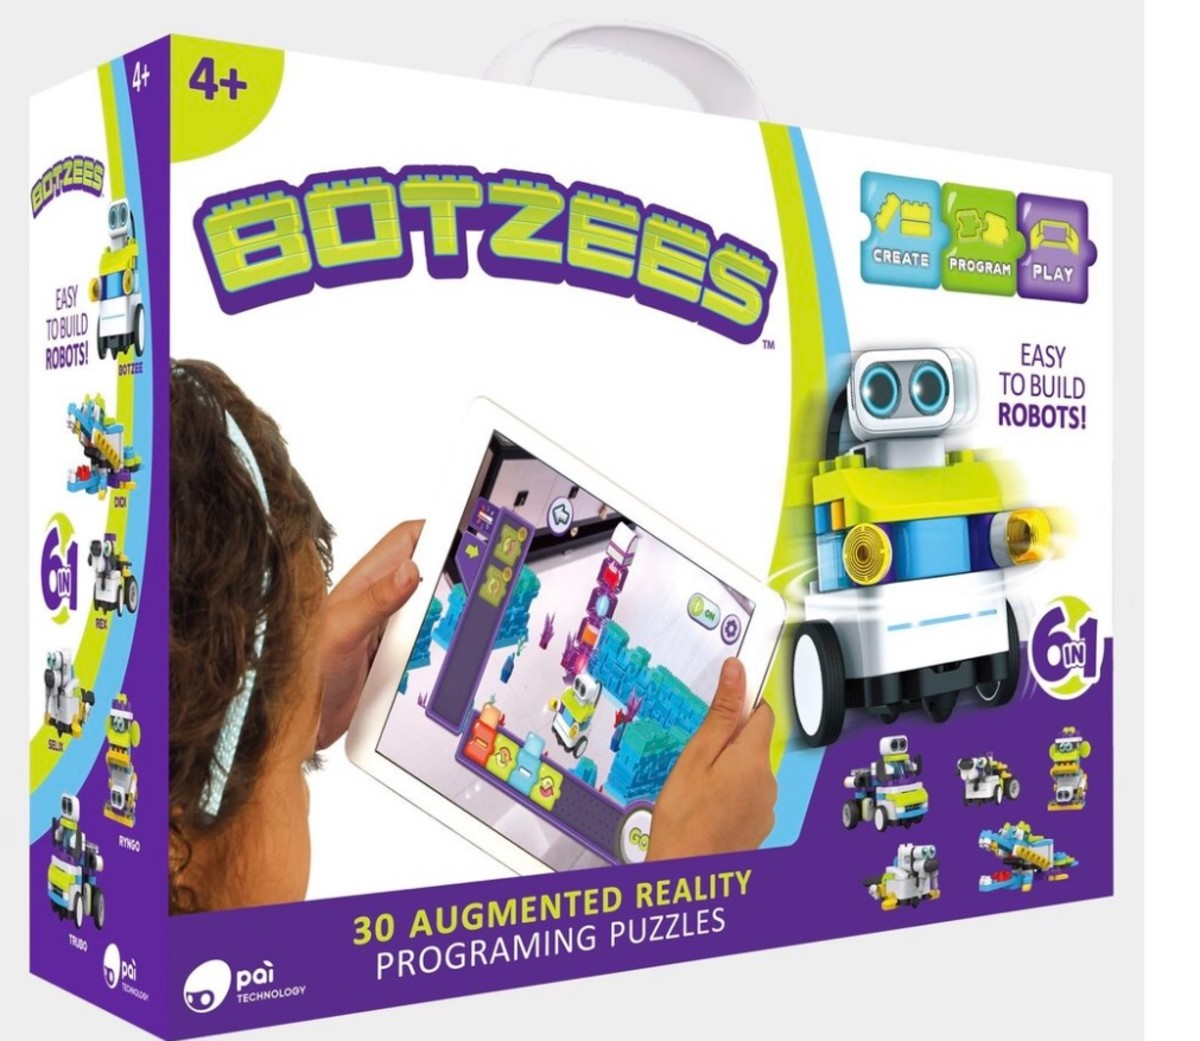 botzees-the-augmented-reality-coding-kit-for-kids